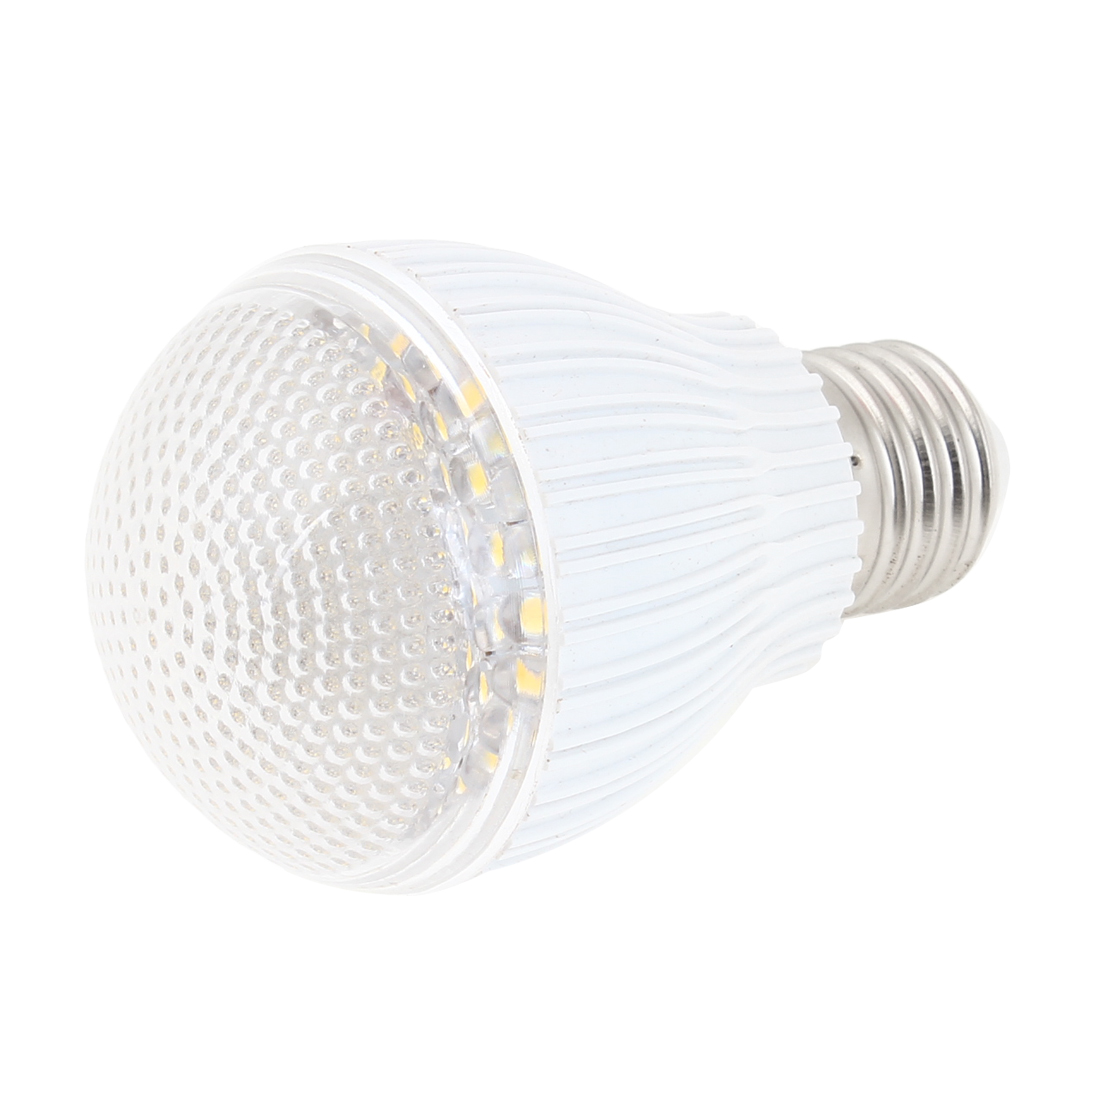 Metal Plastic Housing Warm White 60-LED Bedroom Lamp Bulb 4W